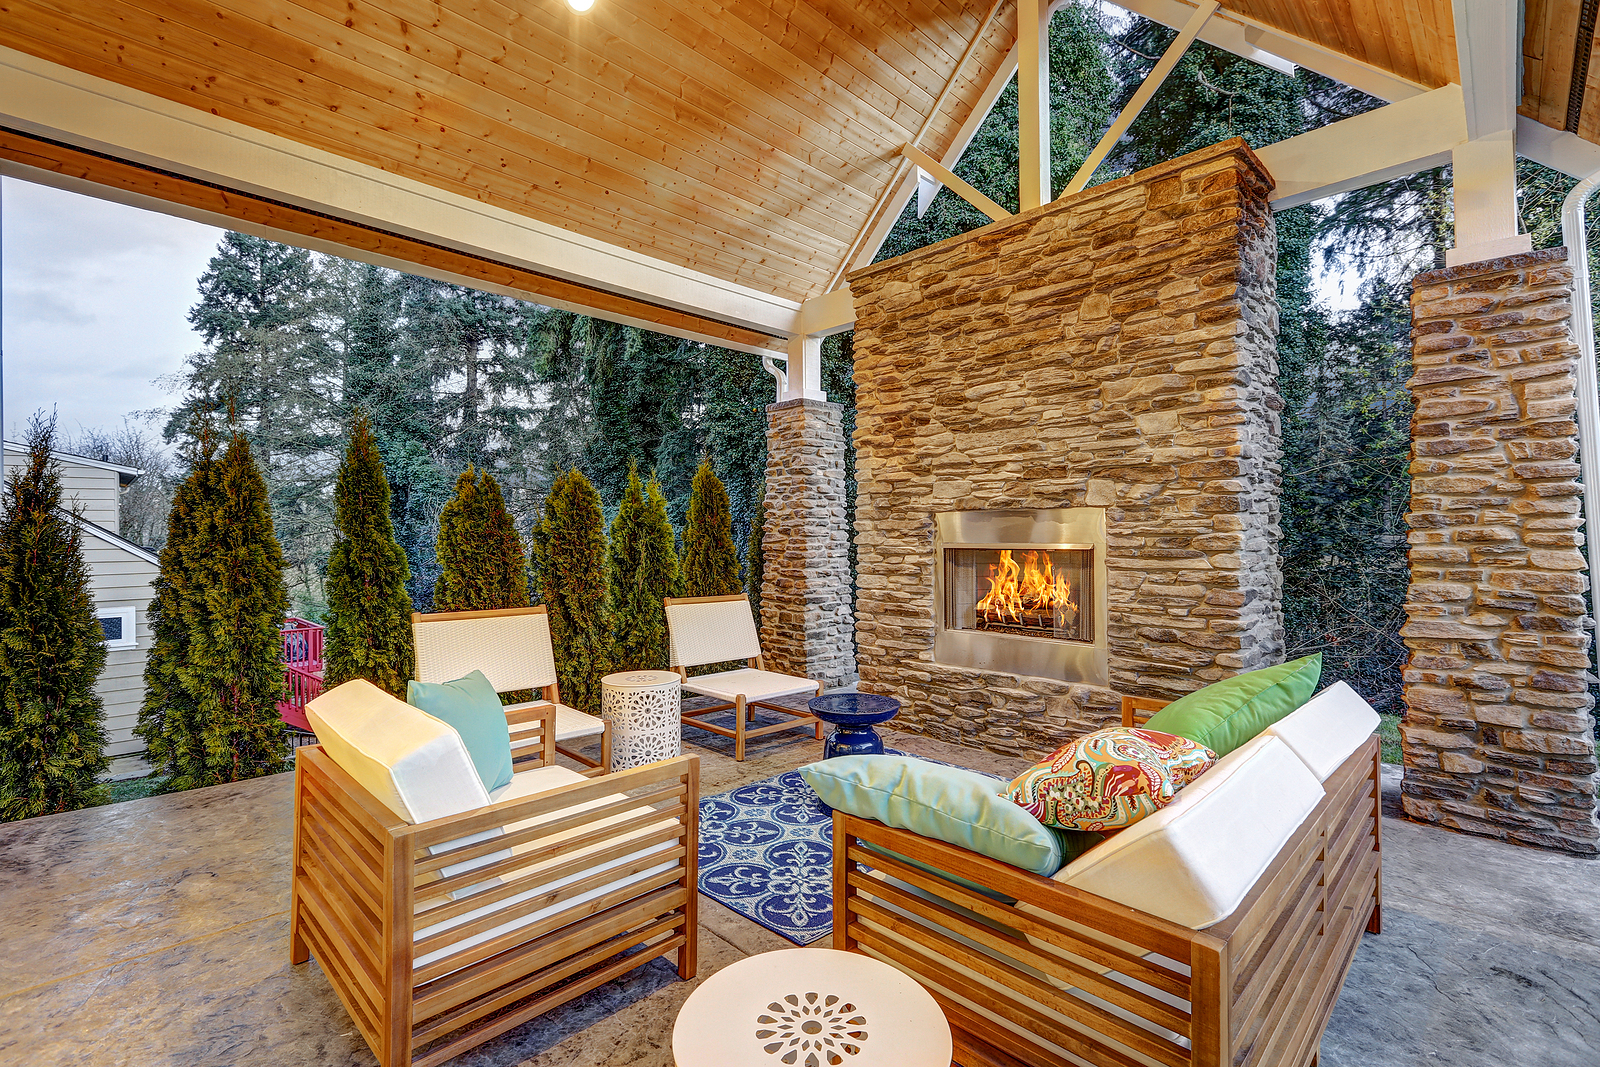 Chic covered patio with teak outdoor furniture